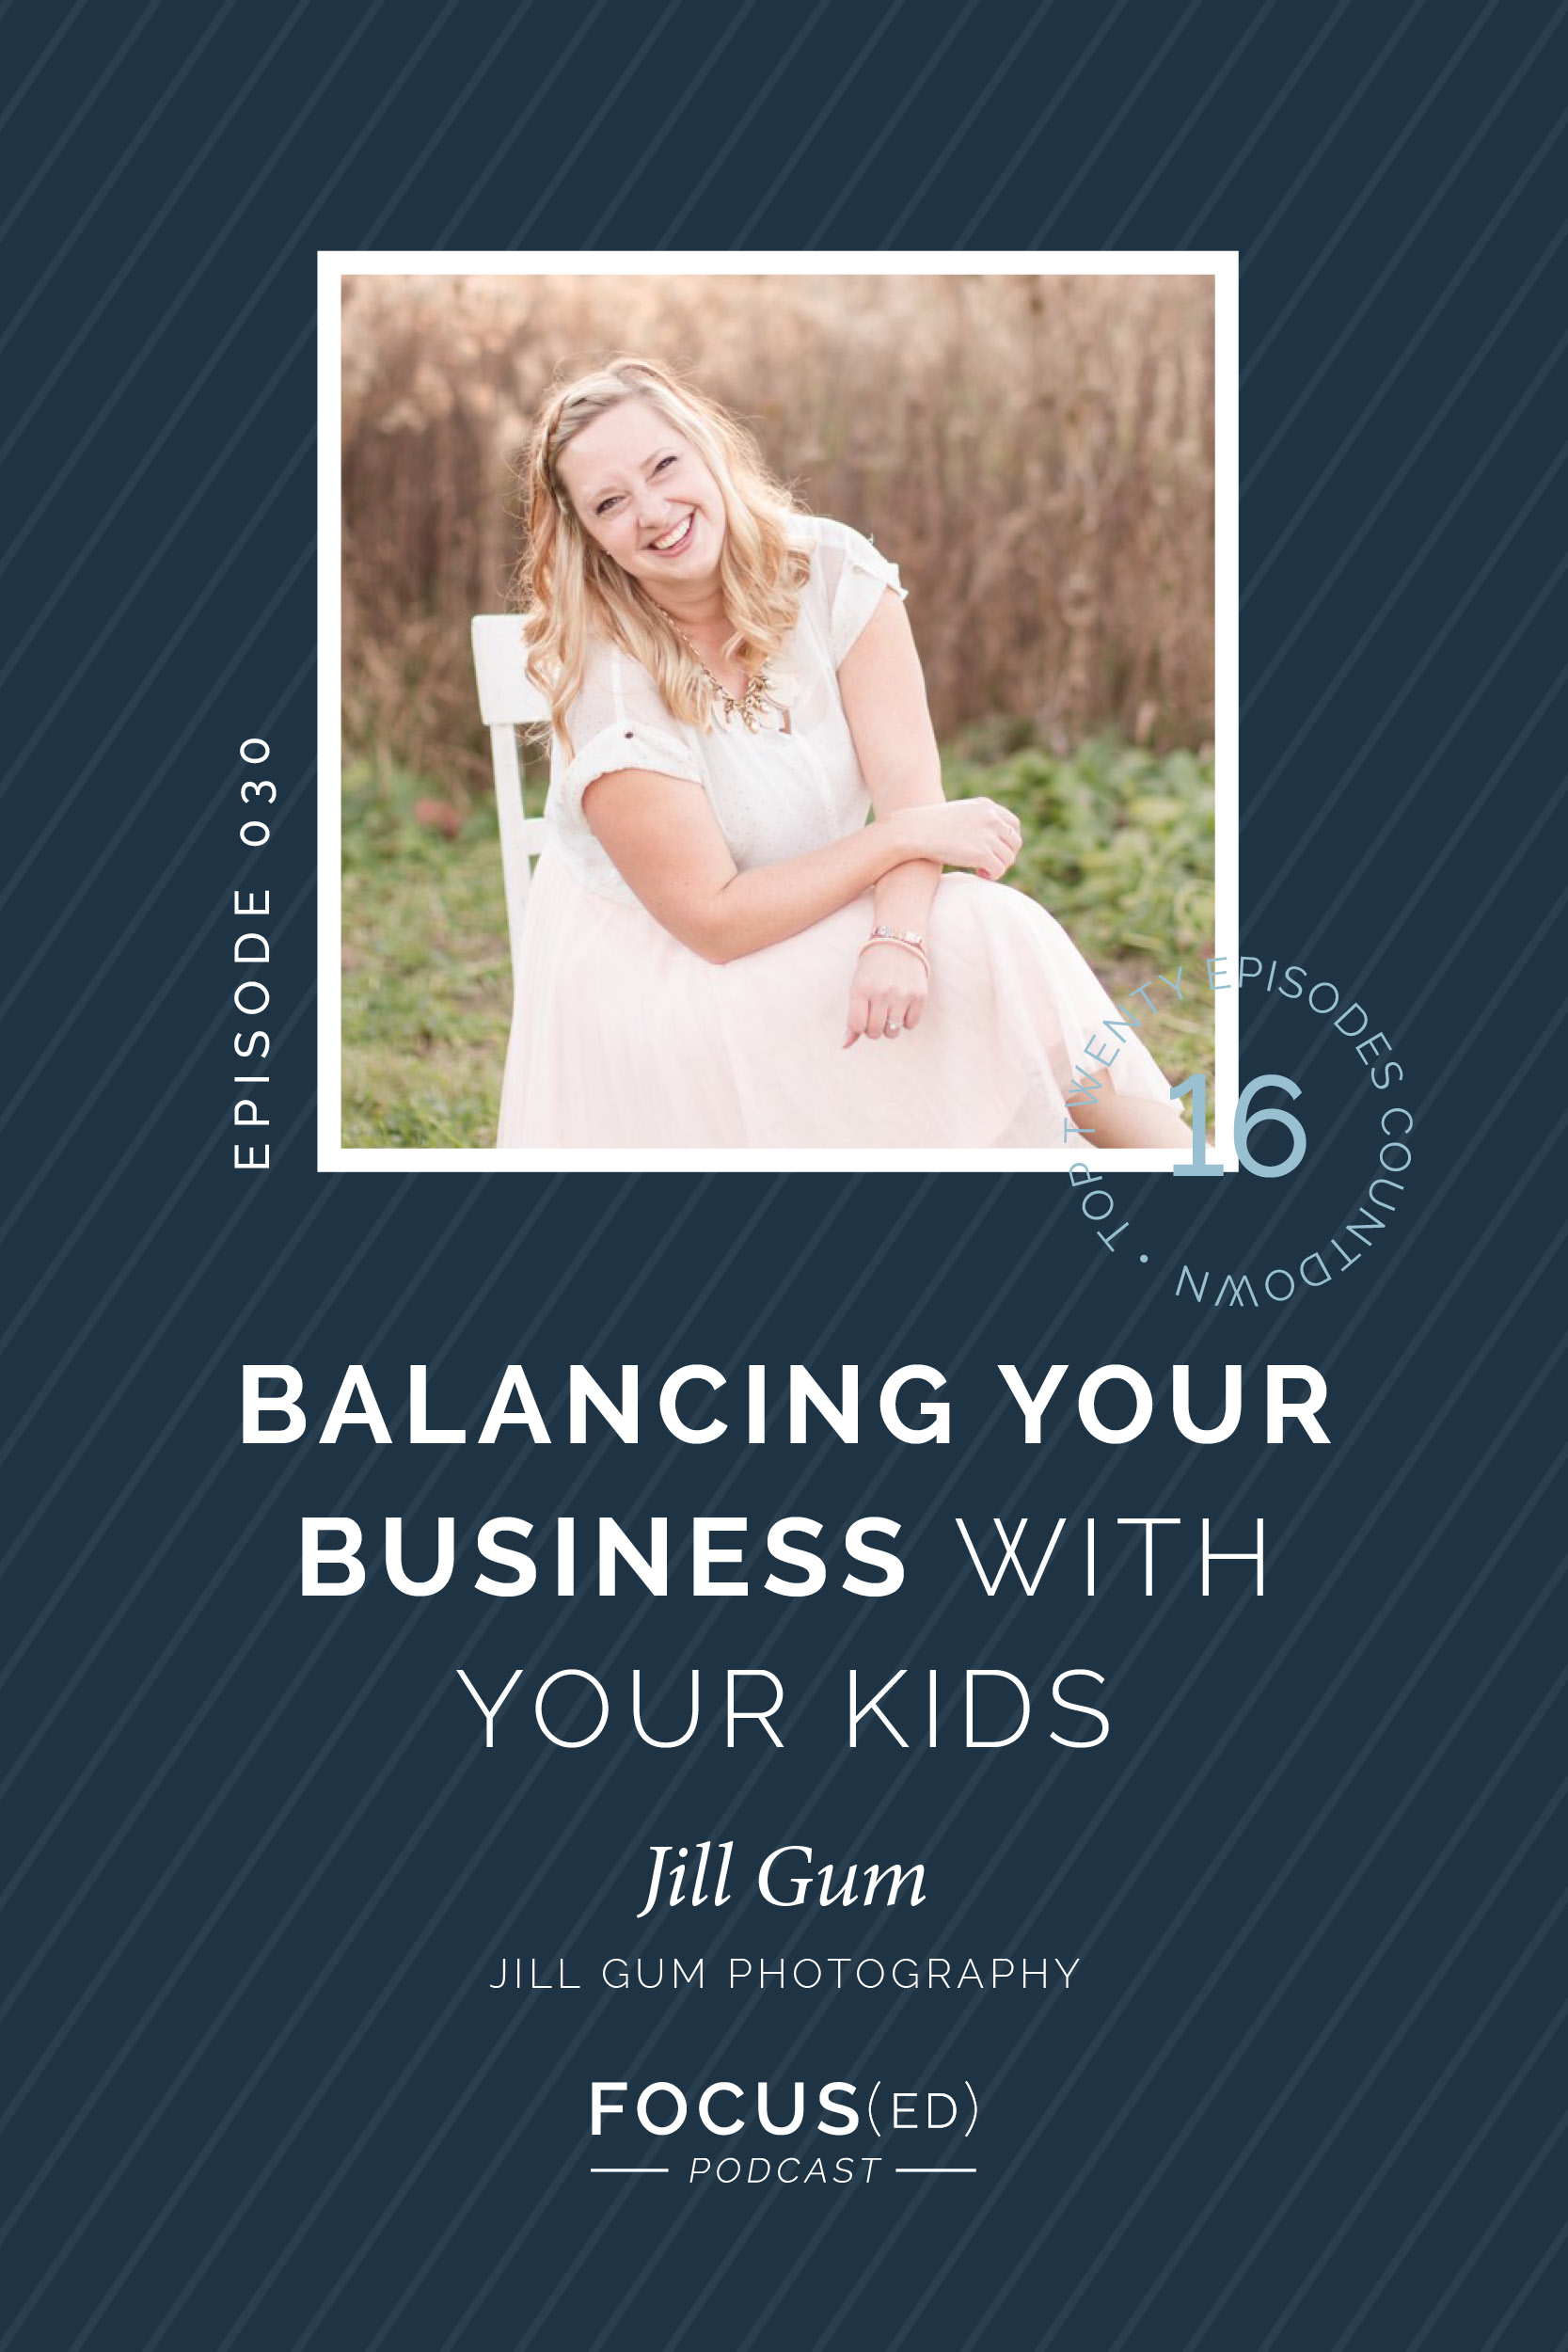 Top 20: #16 Balancing your business with also having small children with Jill Gum  |  Focus(ed) Podcast